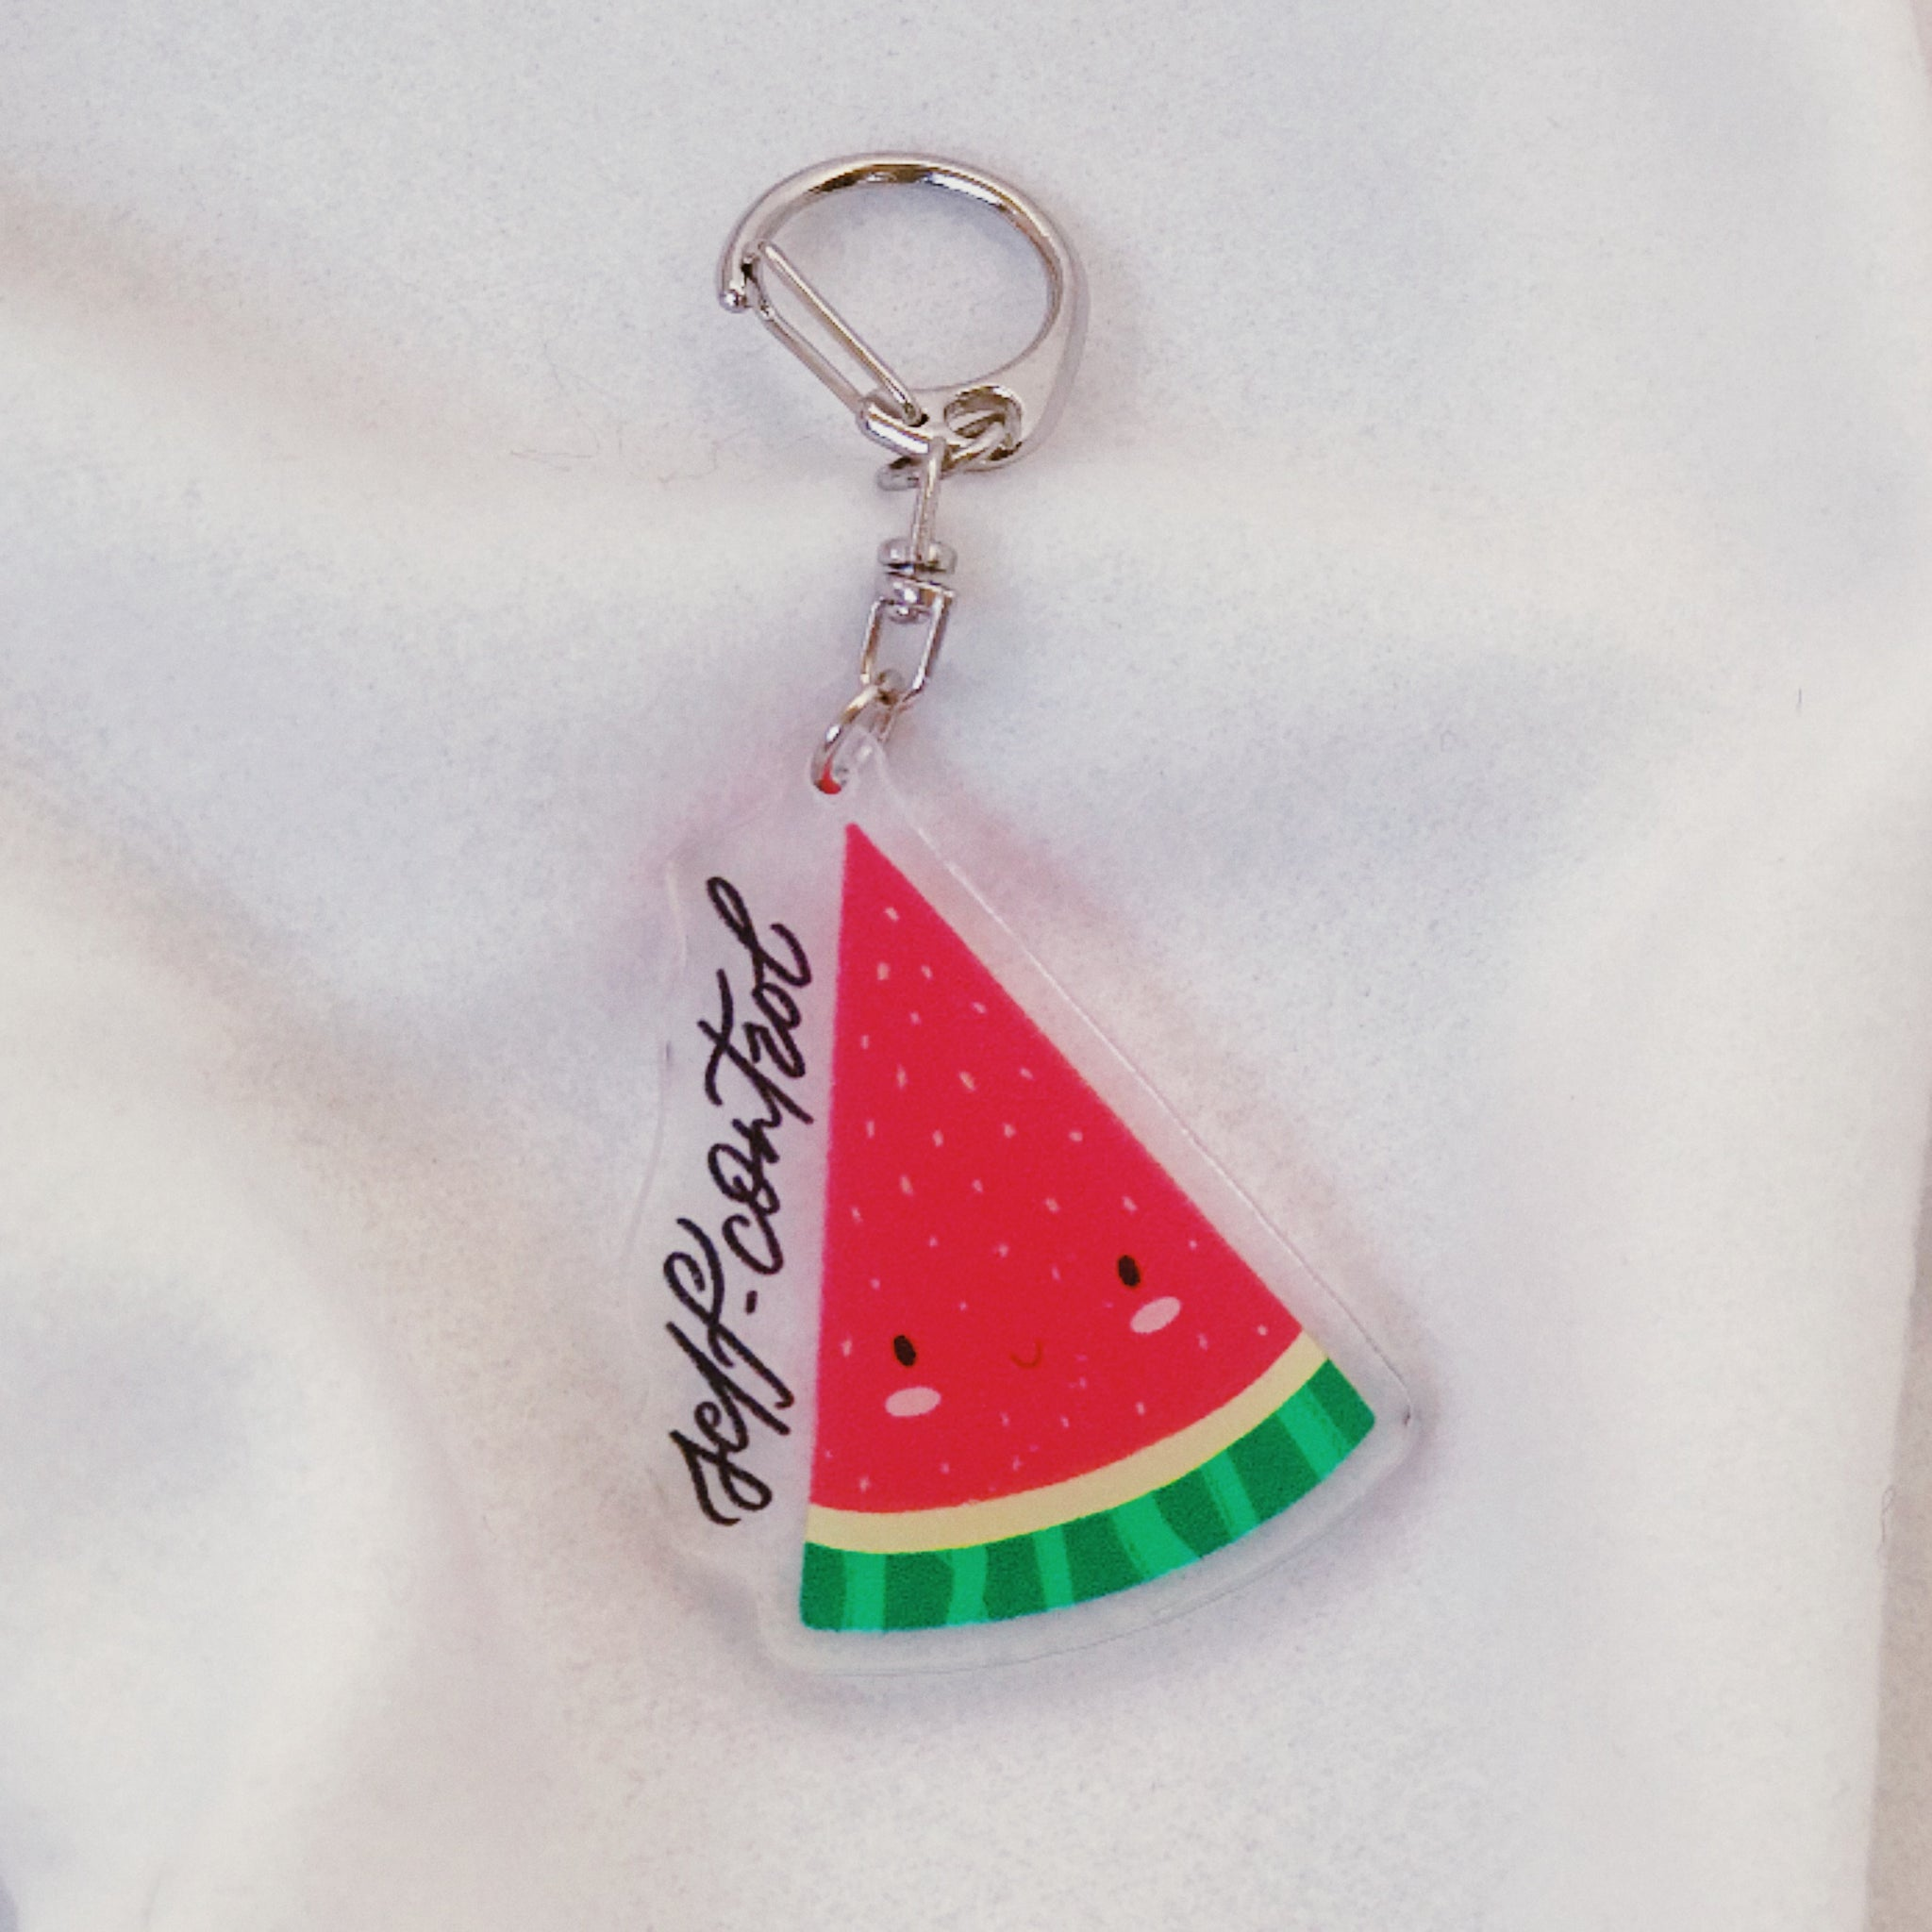 Self-Control (Watermelon) | Acrylic Keychain